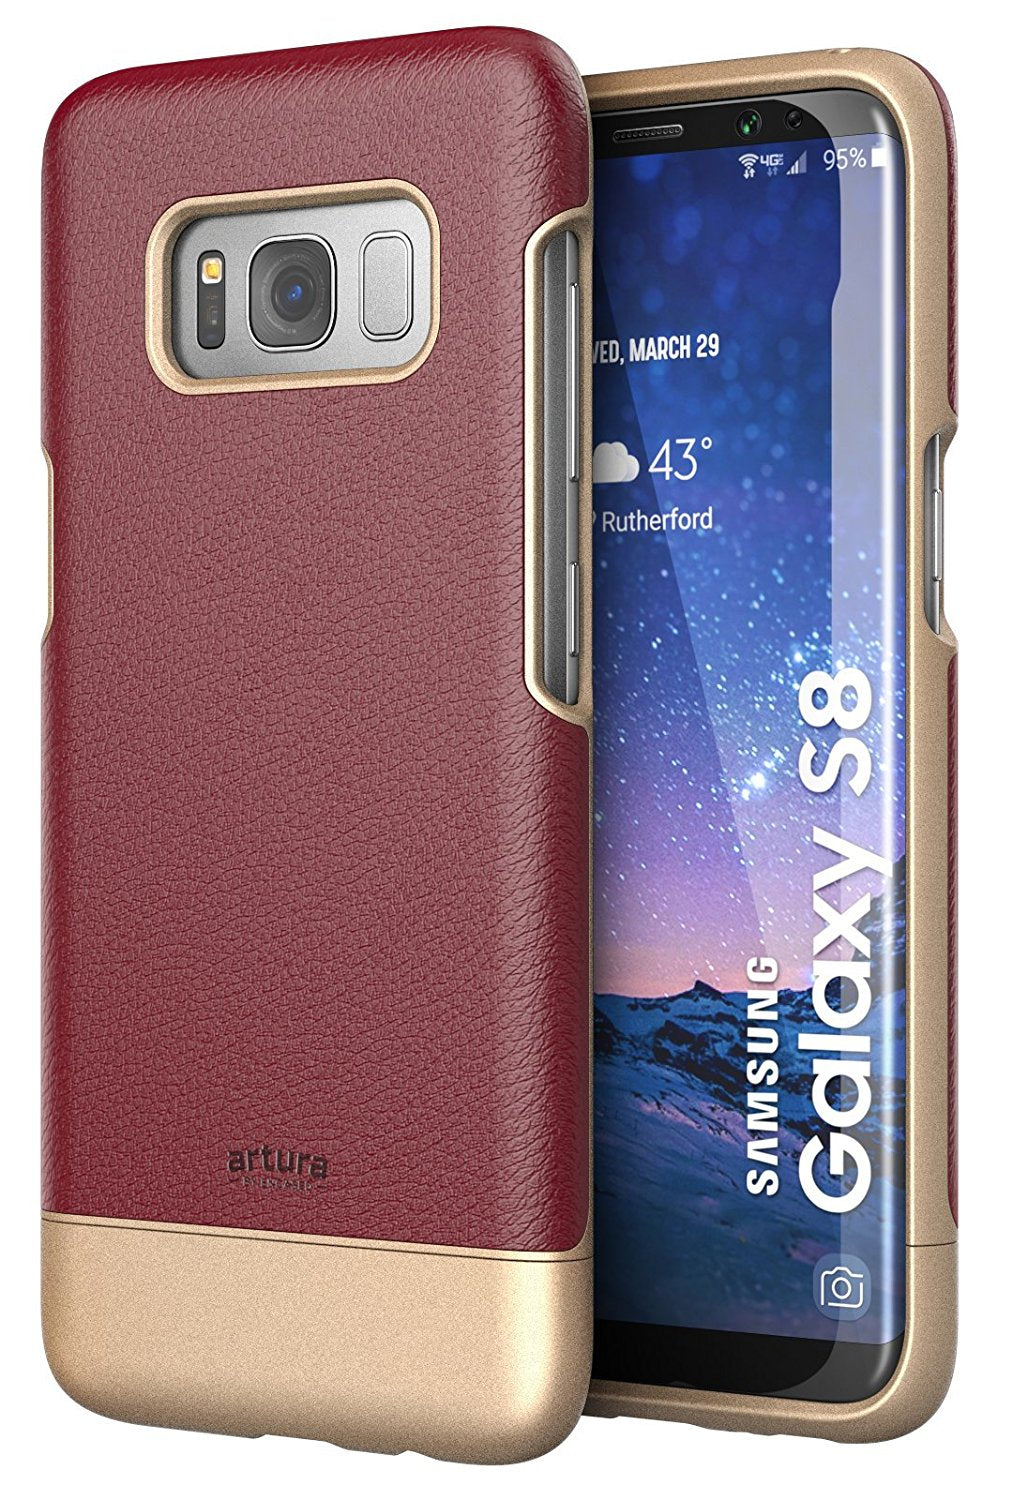 Galaxy S8 Premium Vegan Leather Case - Artura Collection By Encased (Samsung S8)